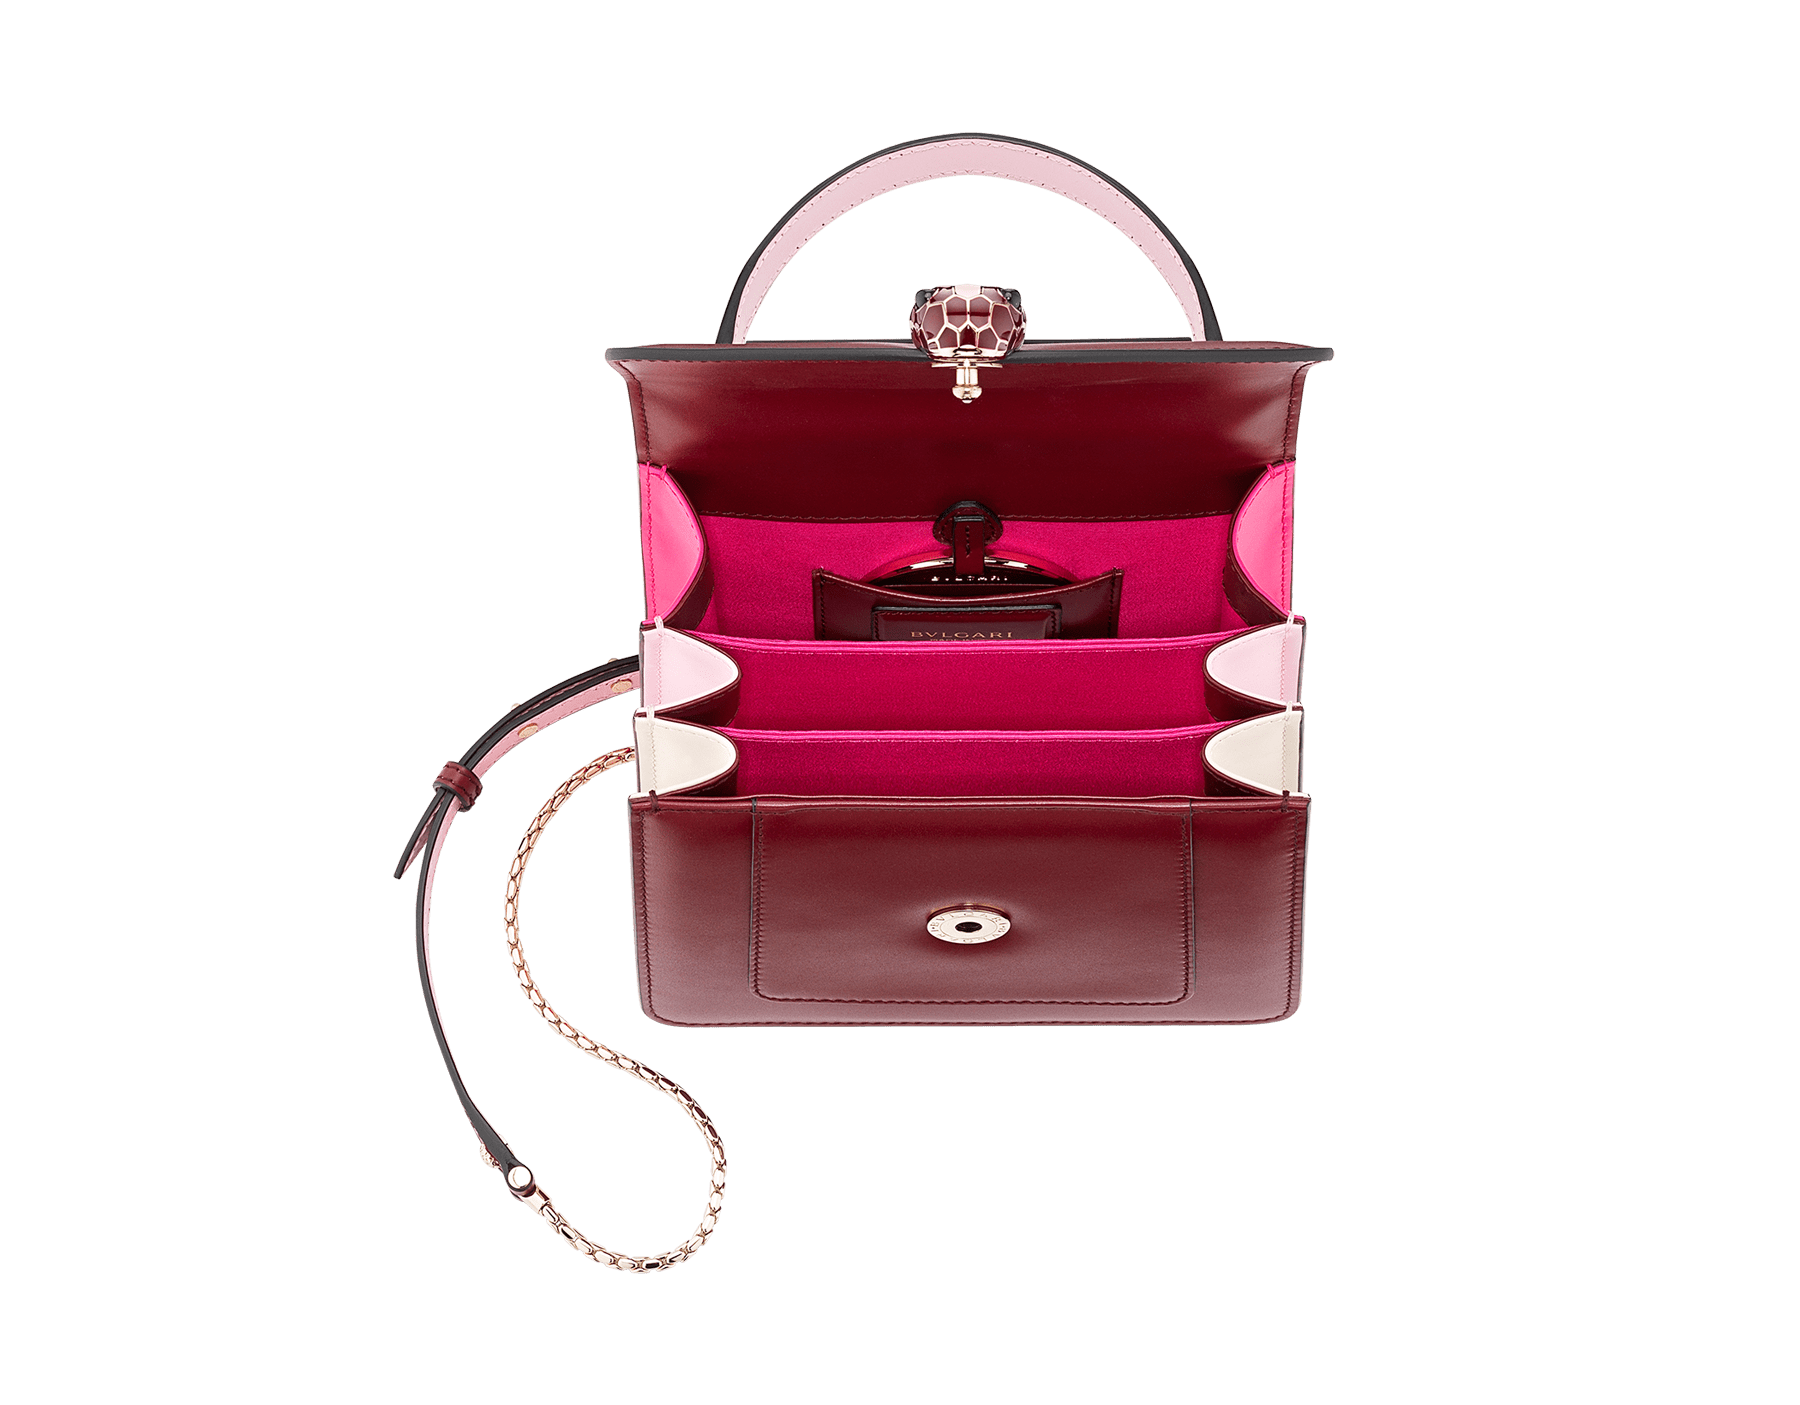 Serpenti Forever crossbody bag in Roman garnet calf leather, with flash amethyst, rosa di francia and white agate calf leather sides. Iconic snakehead closure in light gold plated brass embellished with Roman garnet and rosa di francia enamel and black onyx eyes. 288891 image 5